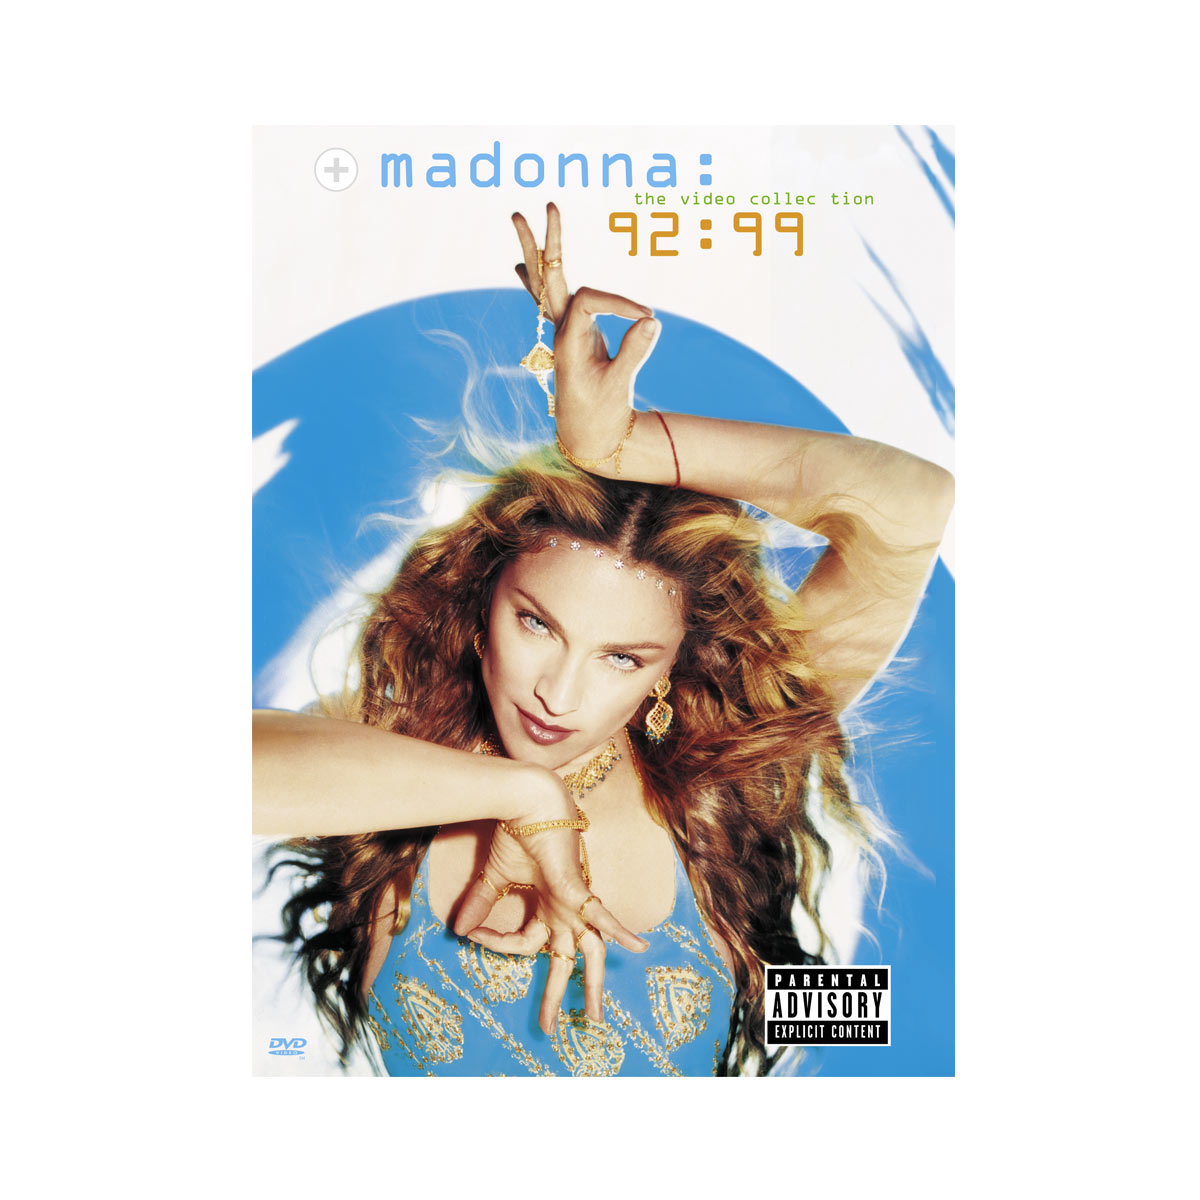 DVD Madonna The Video Collection 93:99